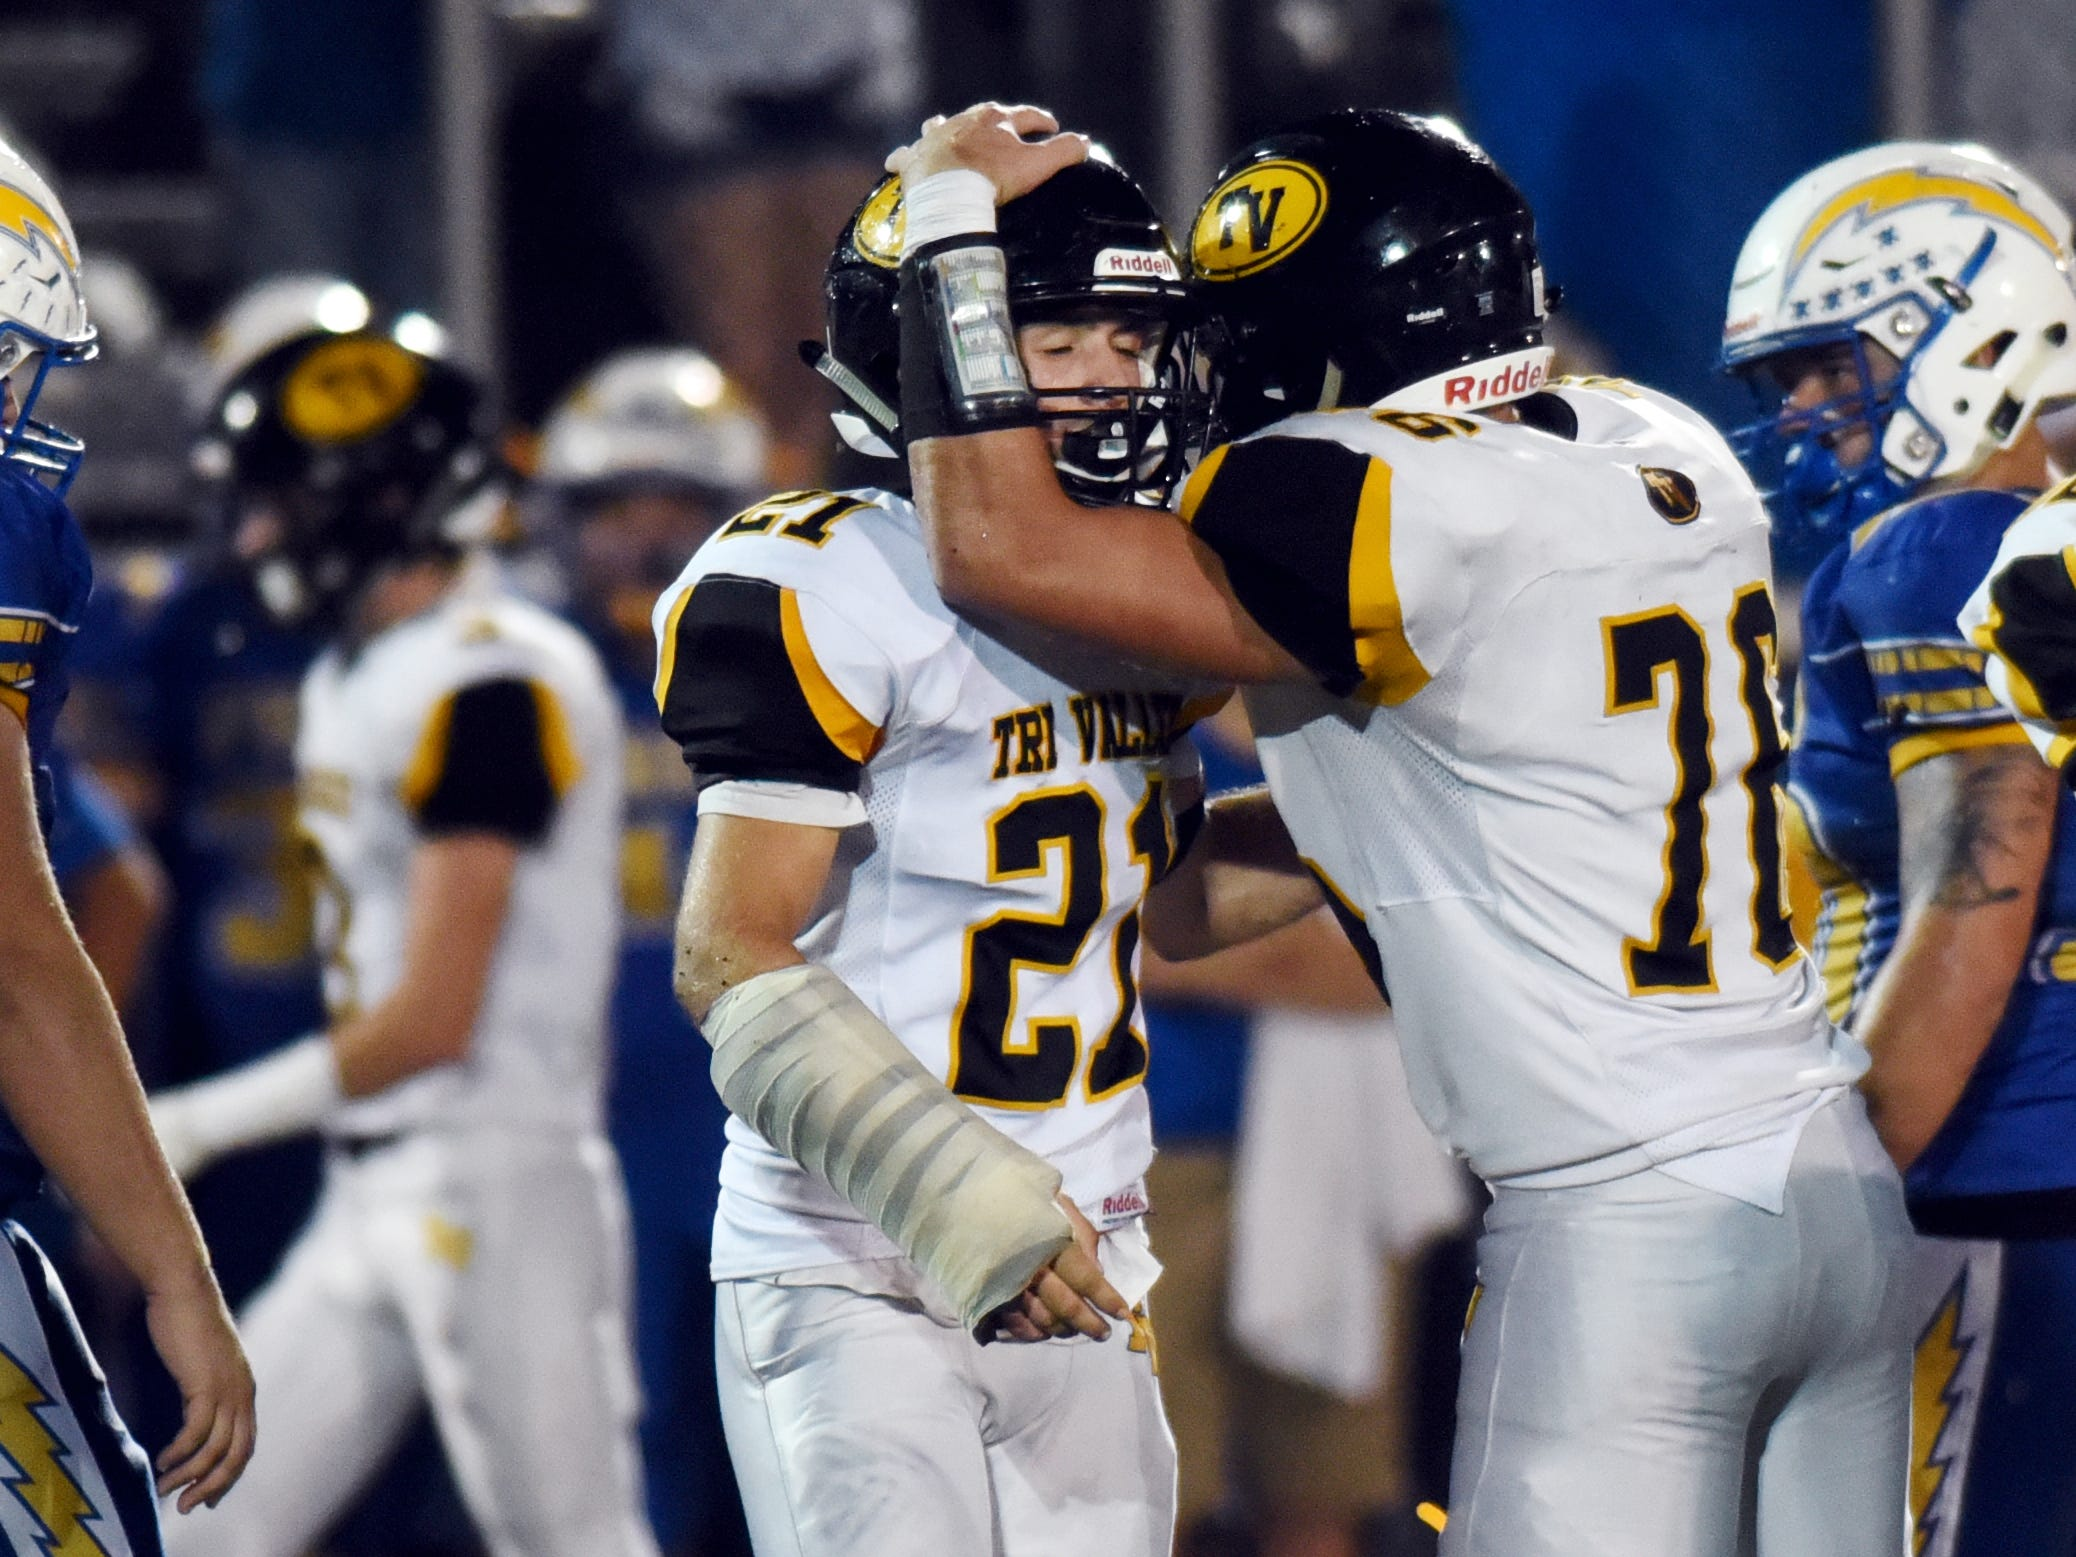 Tri-Valley's Blake Kendrick, left, is congratulated by Gyle Bradshaw after making a sack in the fourth quarter against Philo.